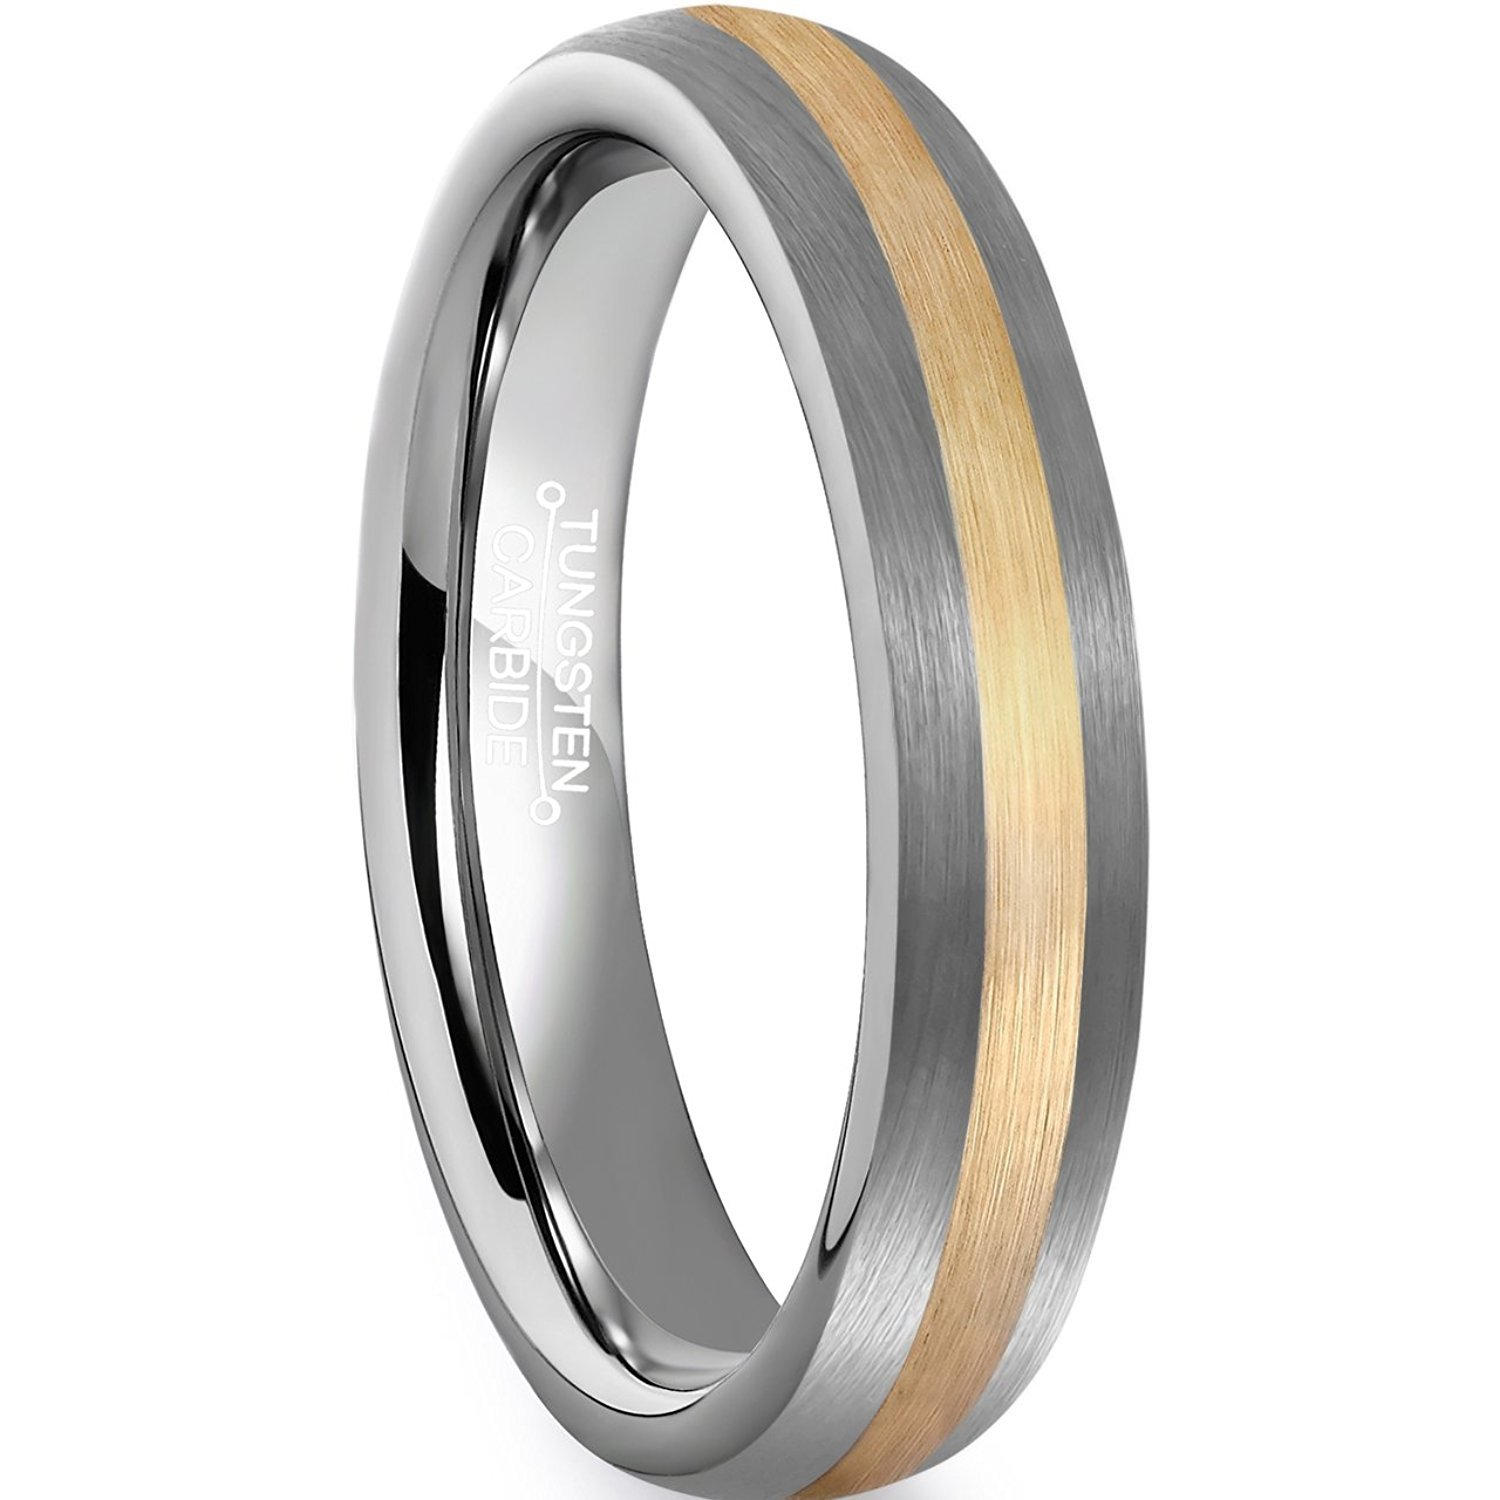 Primary image for 4mm Tungsten Ring Wedding Band 18K Glod Plated Center Sizes 5-15 & Half